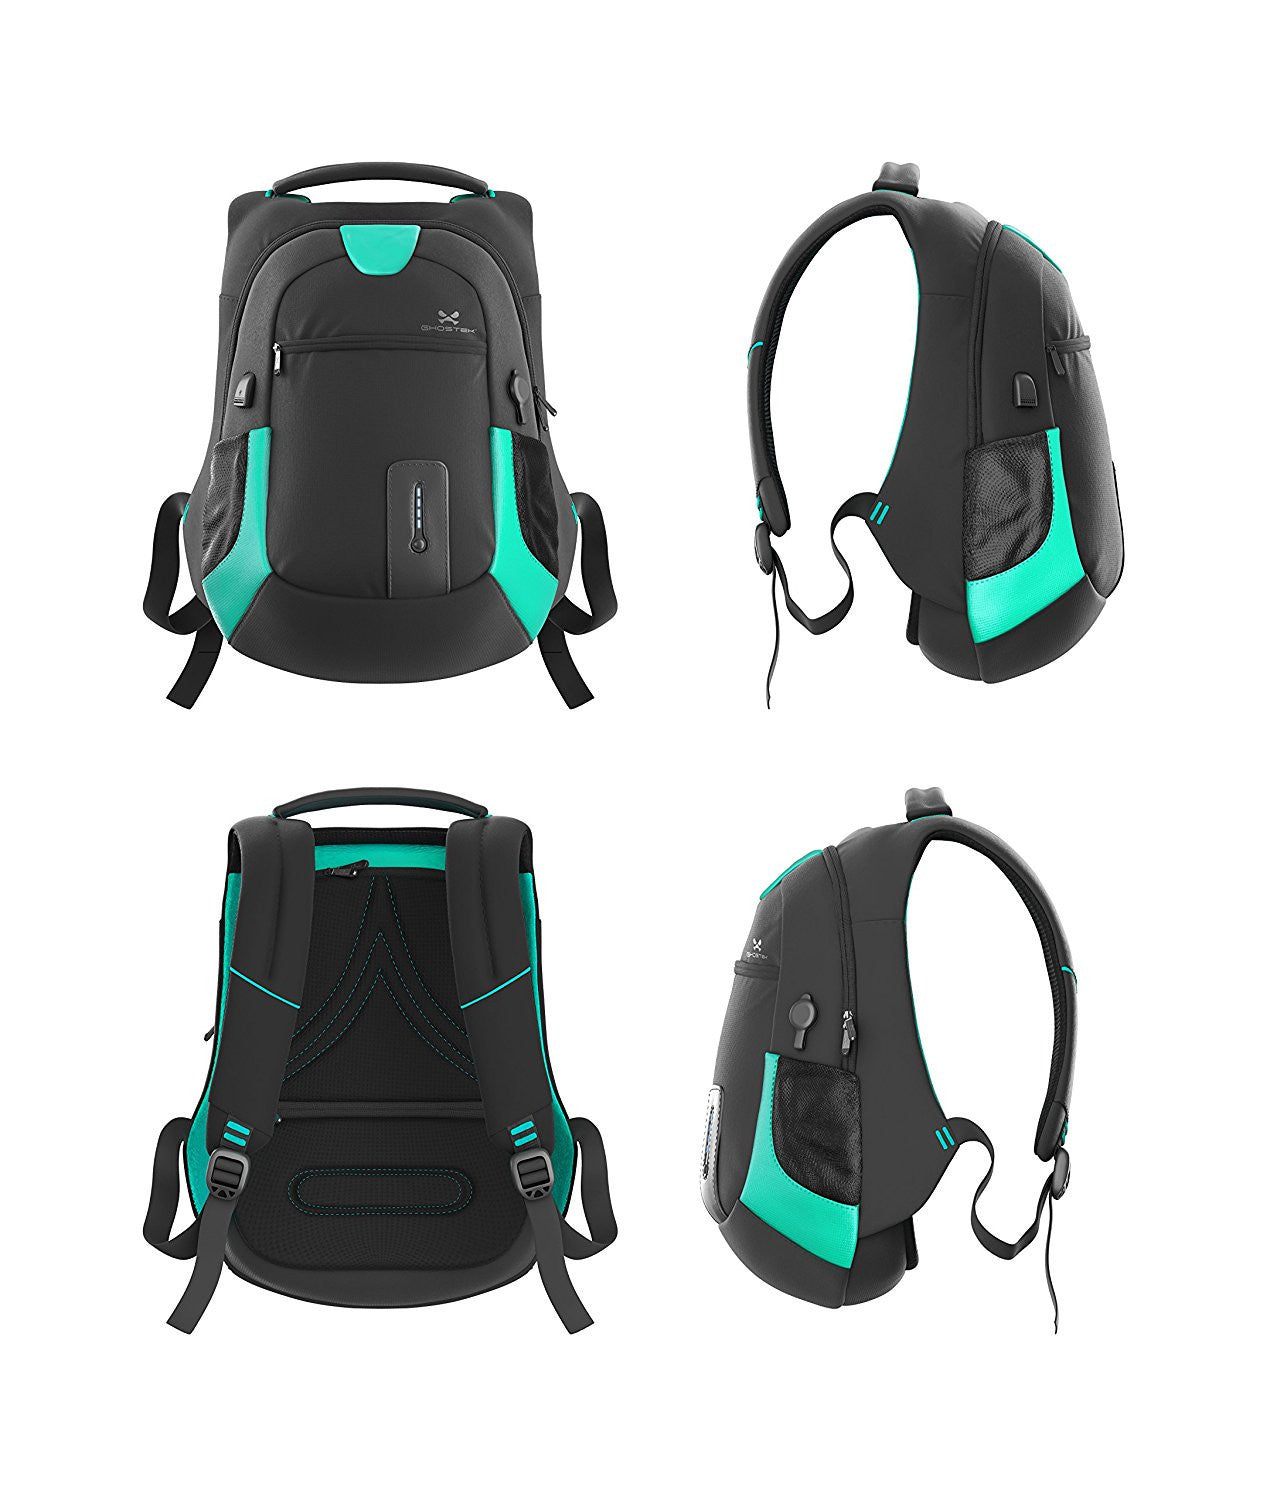 Ghostek NRGbag Teal Series Computer Laptop Messenger Backpack Book Bag + Battery Power Bank | Water Resistant | 7000mAh